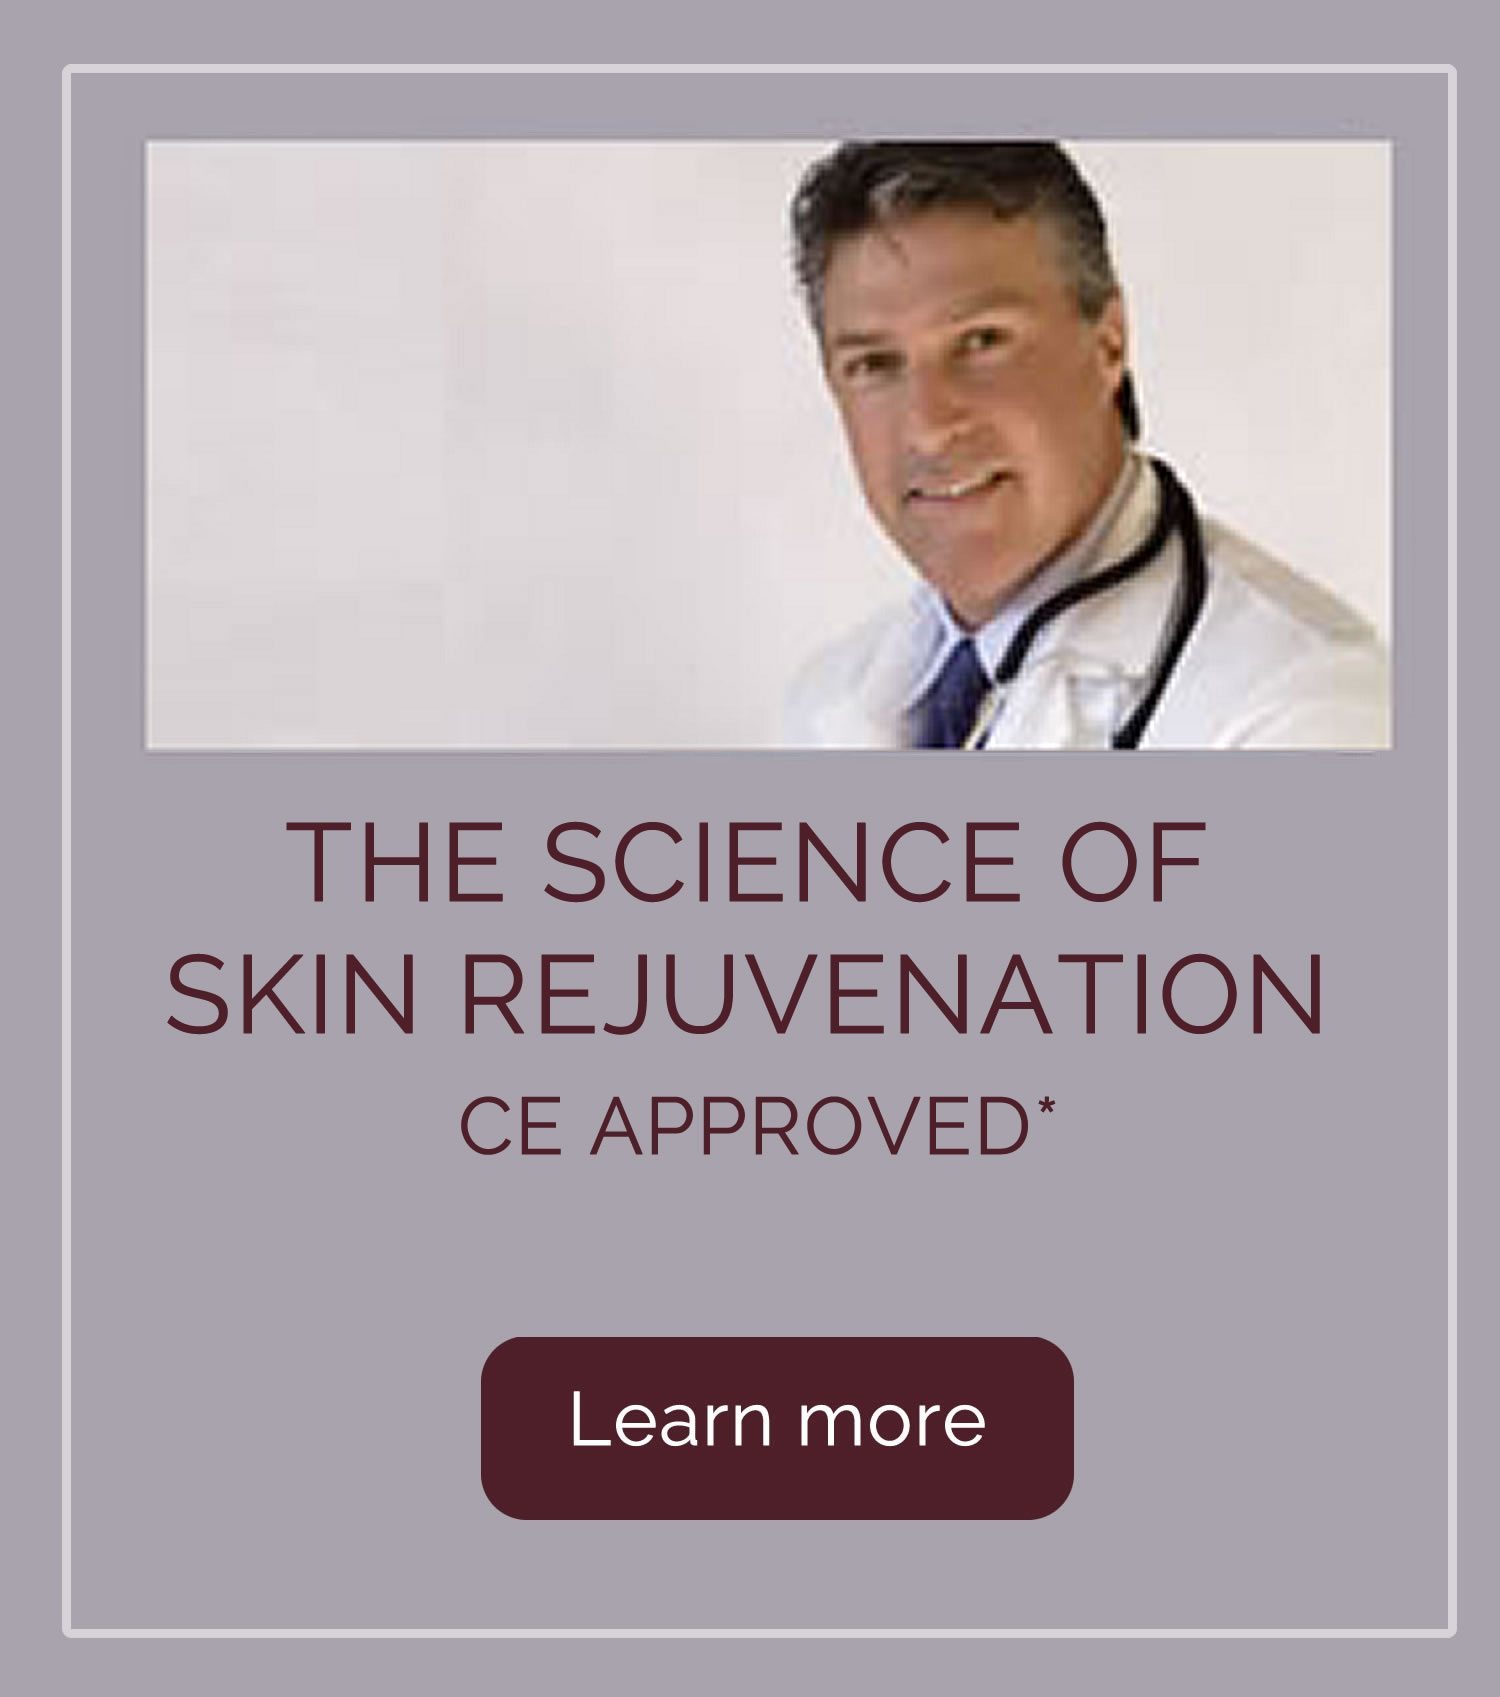 The Science of Skin Rejuvenation